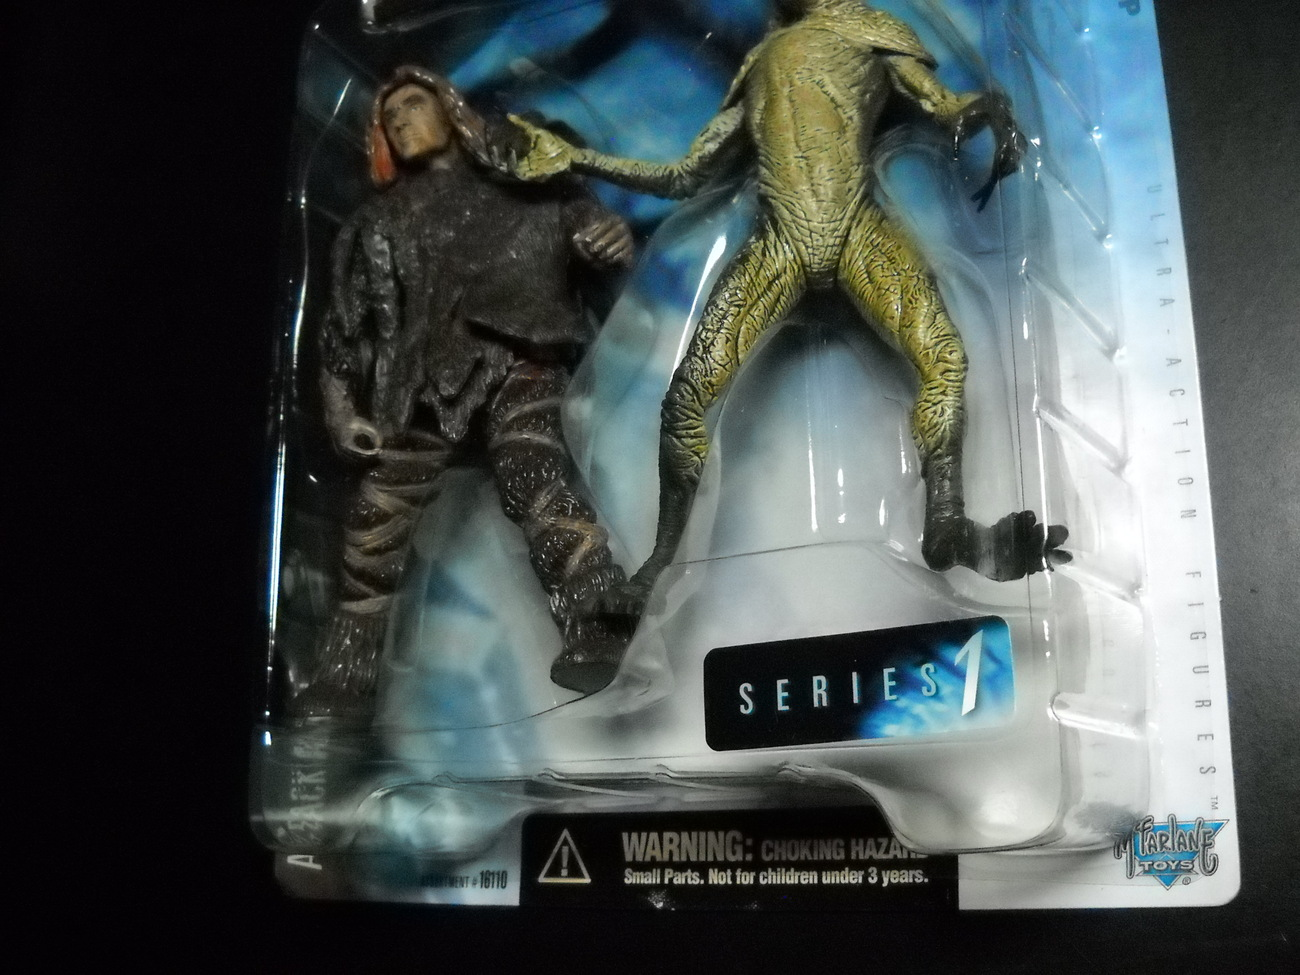 X Files Series 1 Attack Alien Figures Sealed